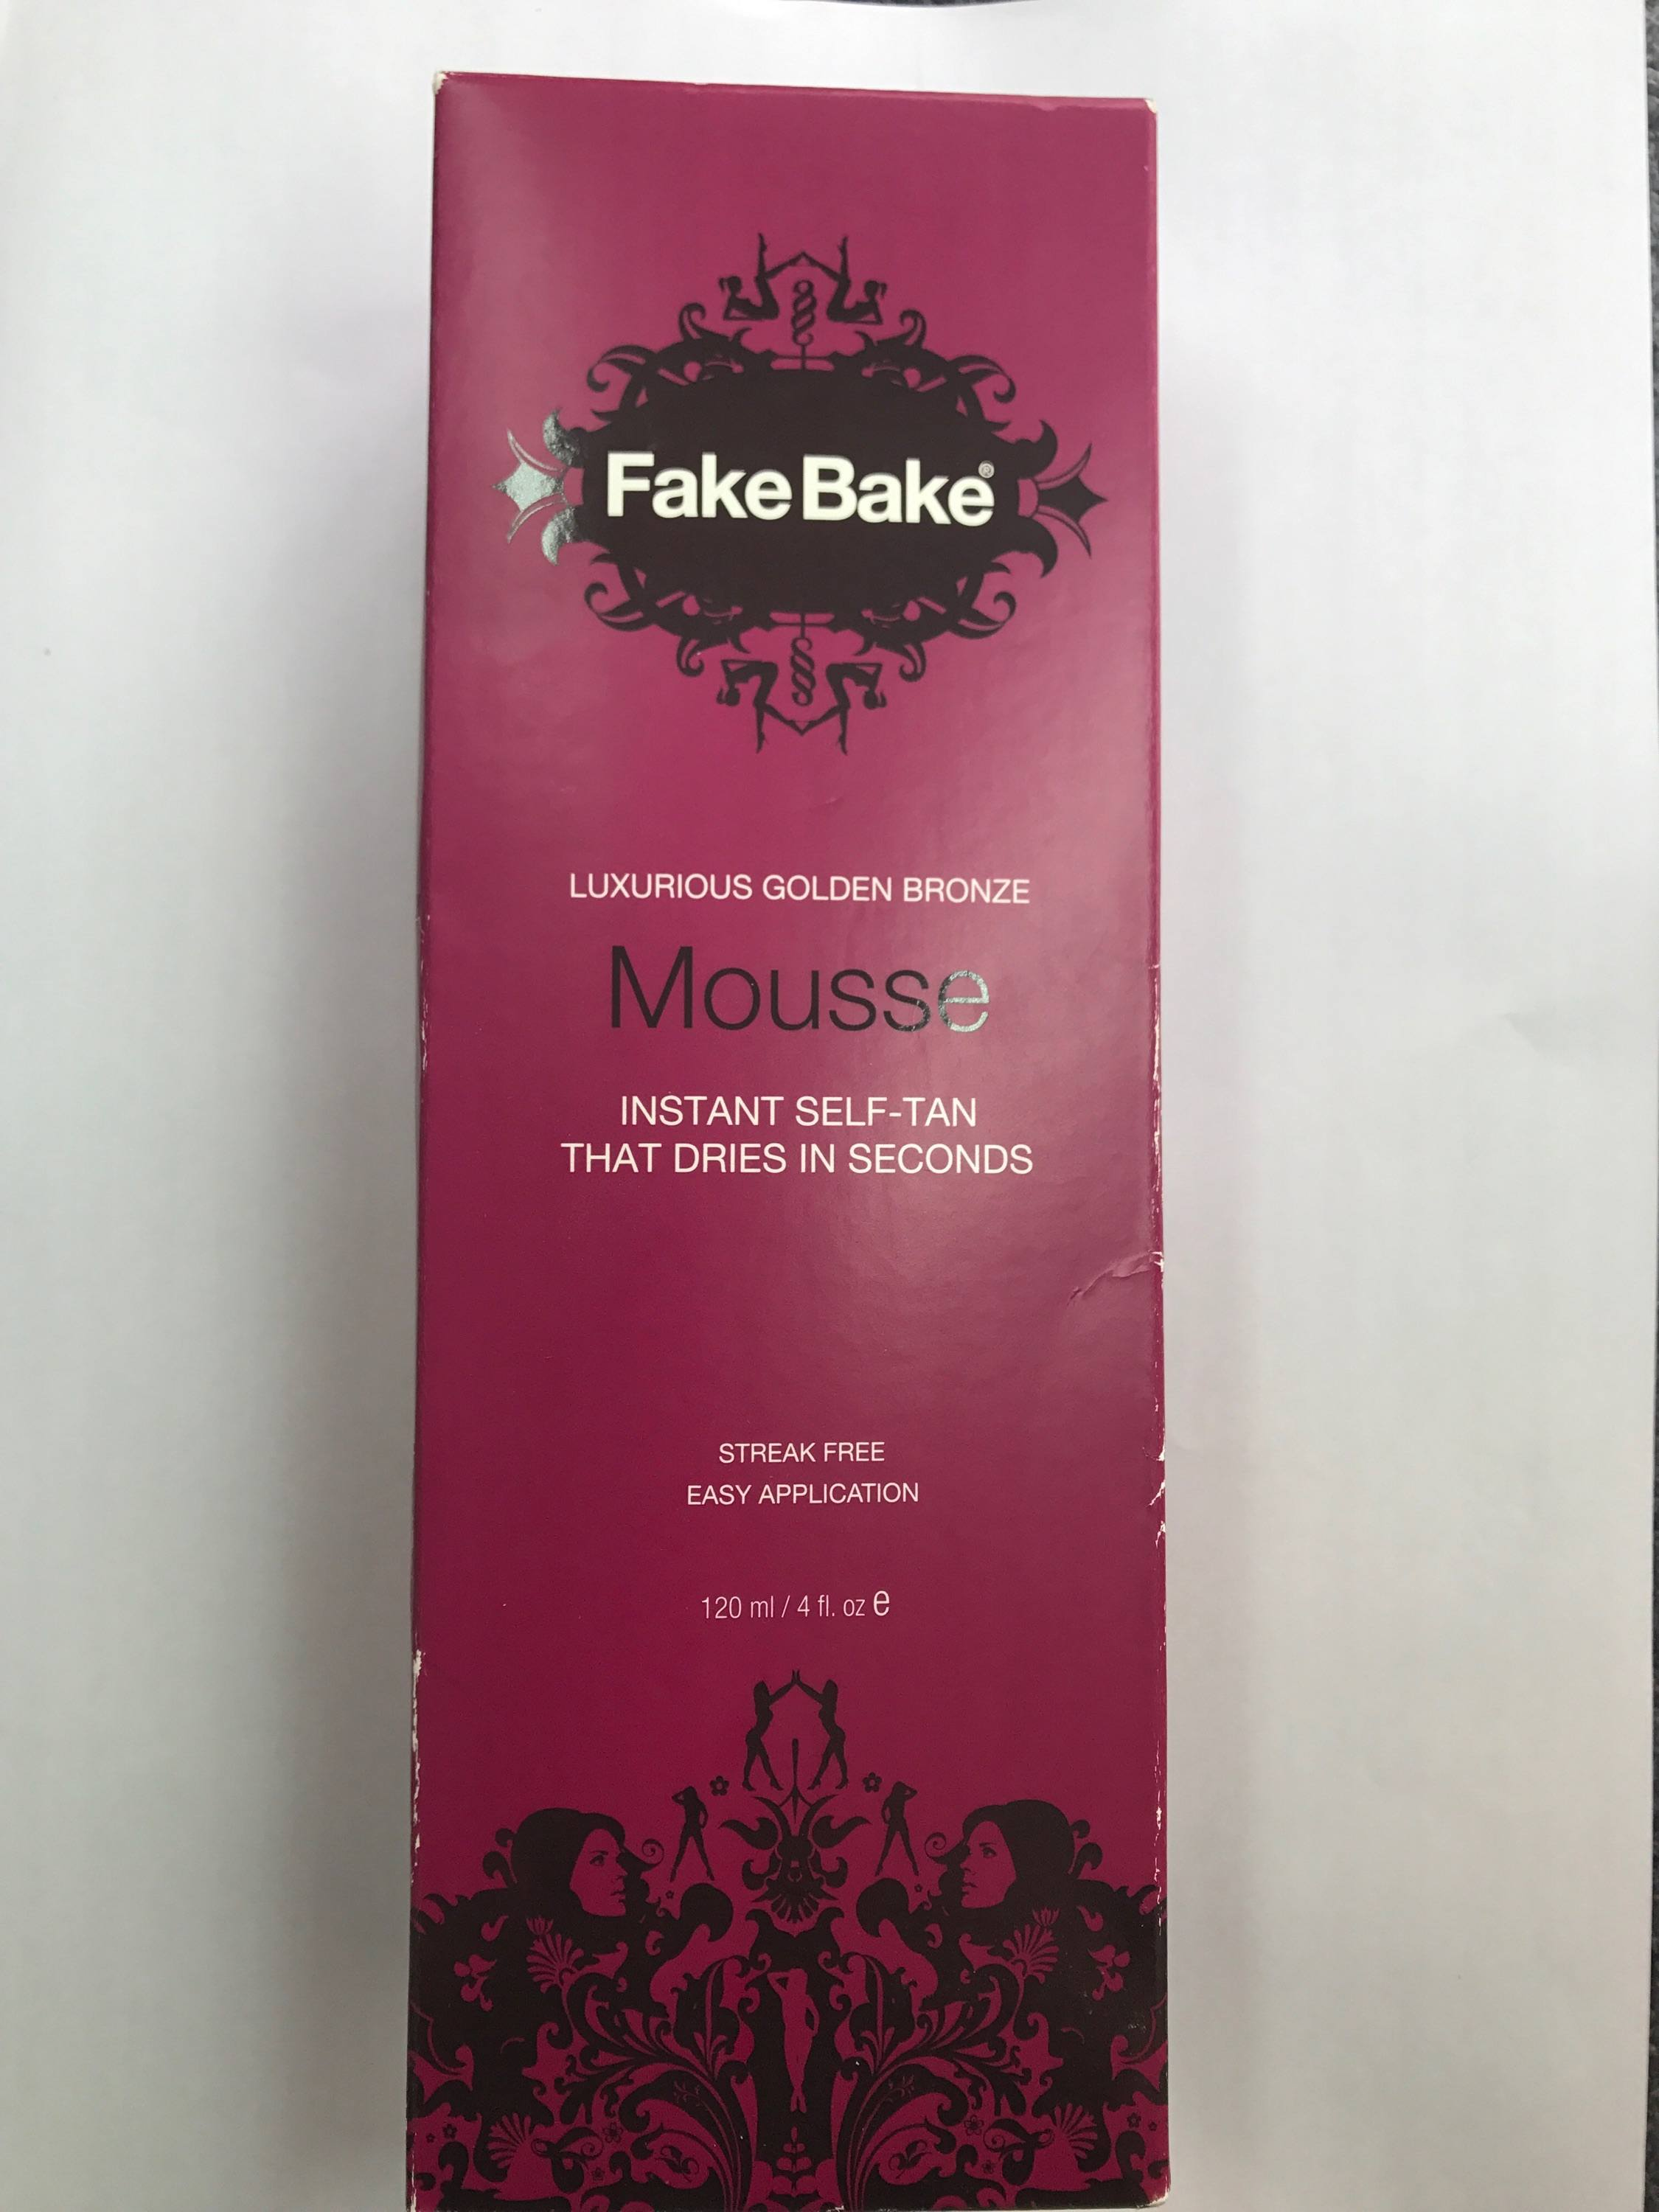 Fake Bake Luxurious Golden Bronze Mousse Brighton